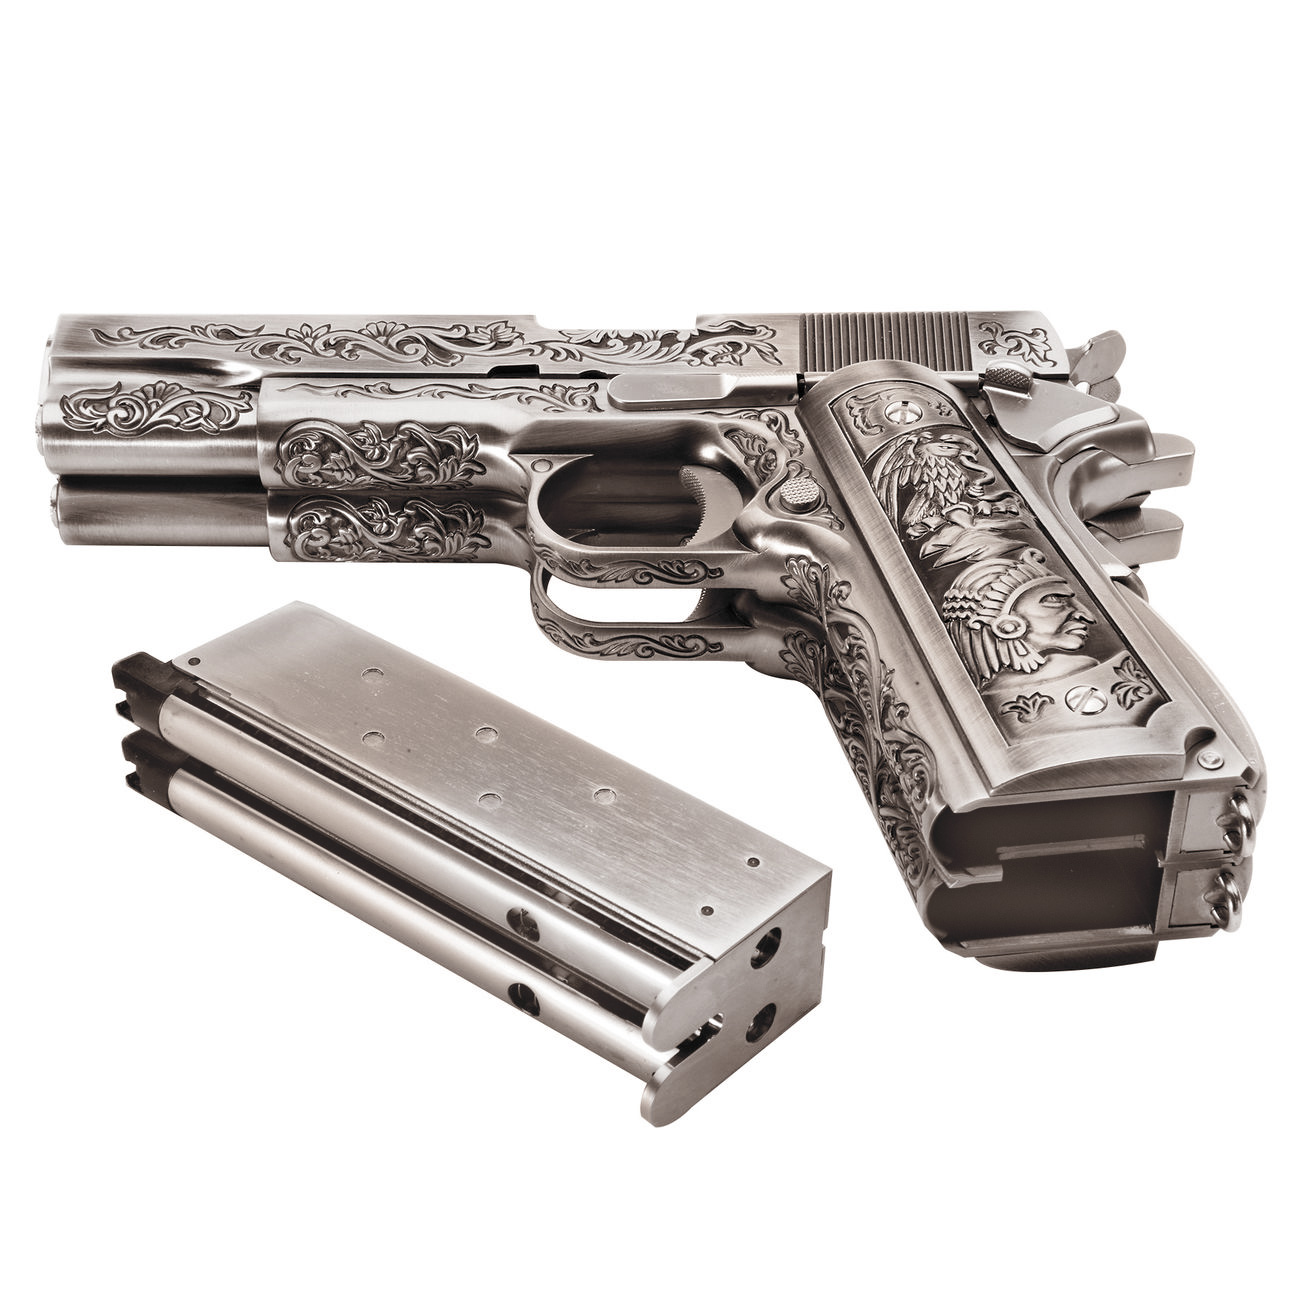 Wei-ETech M1911 Double Barrel Etched Version Mehico Druglord Vollmetall GBB 6mm BB Satin-Chrome 4